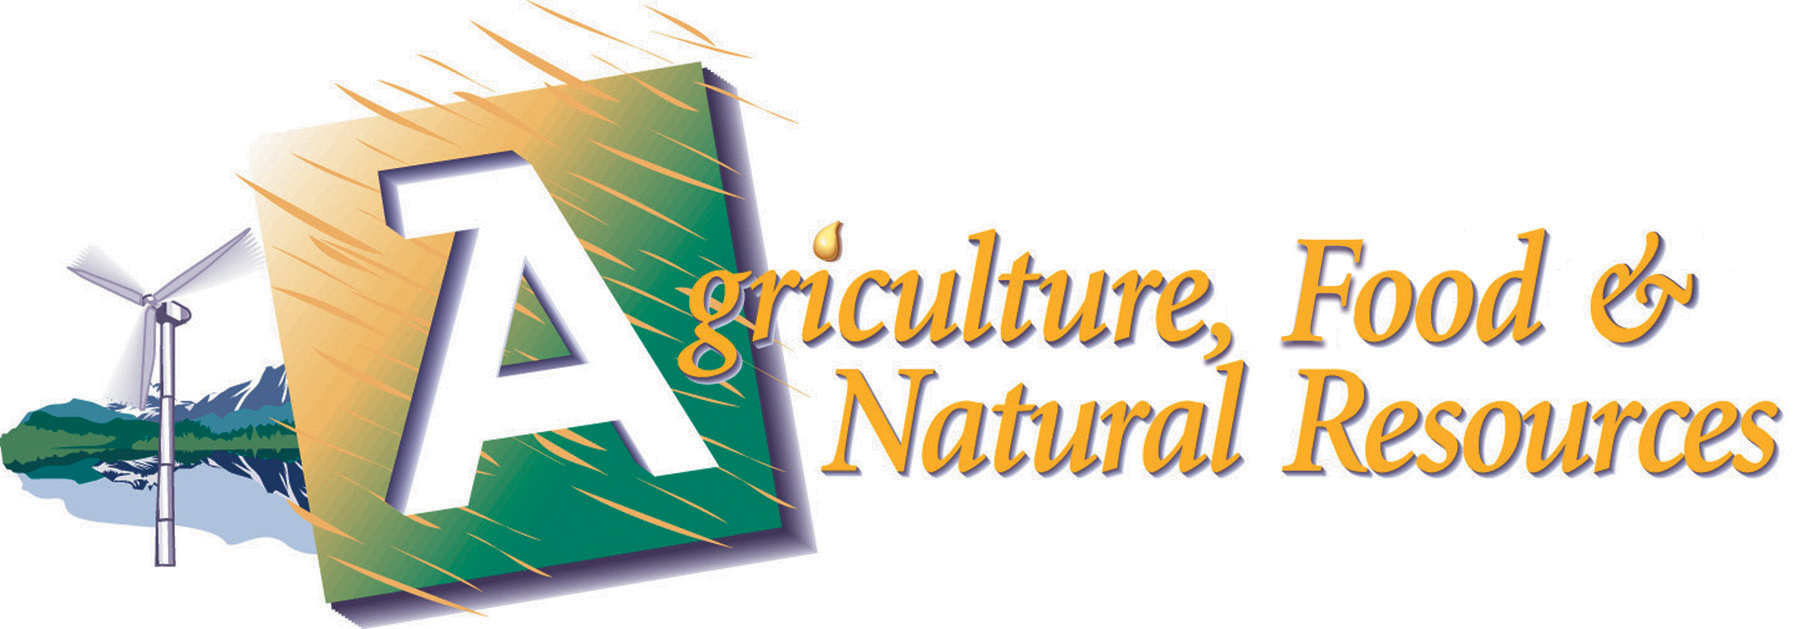 Career and technical education cte agriculture food for Cuisine resources